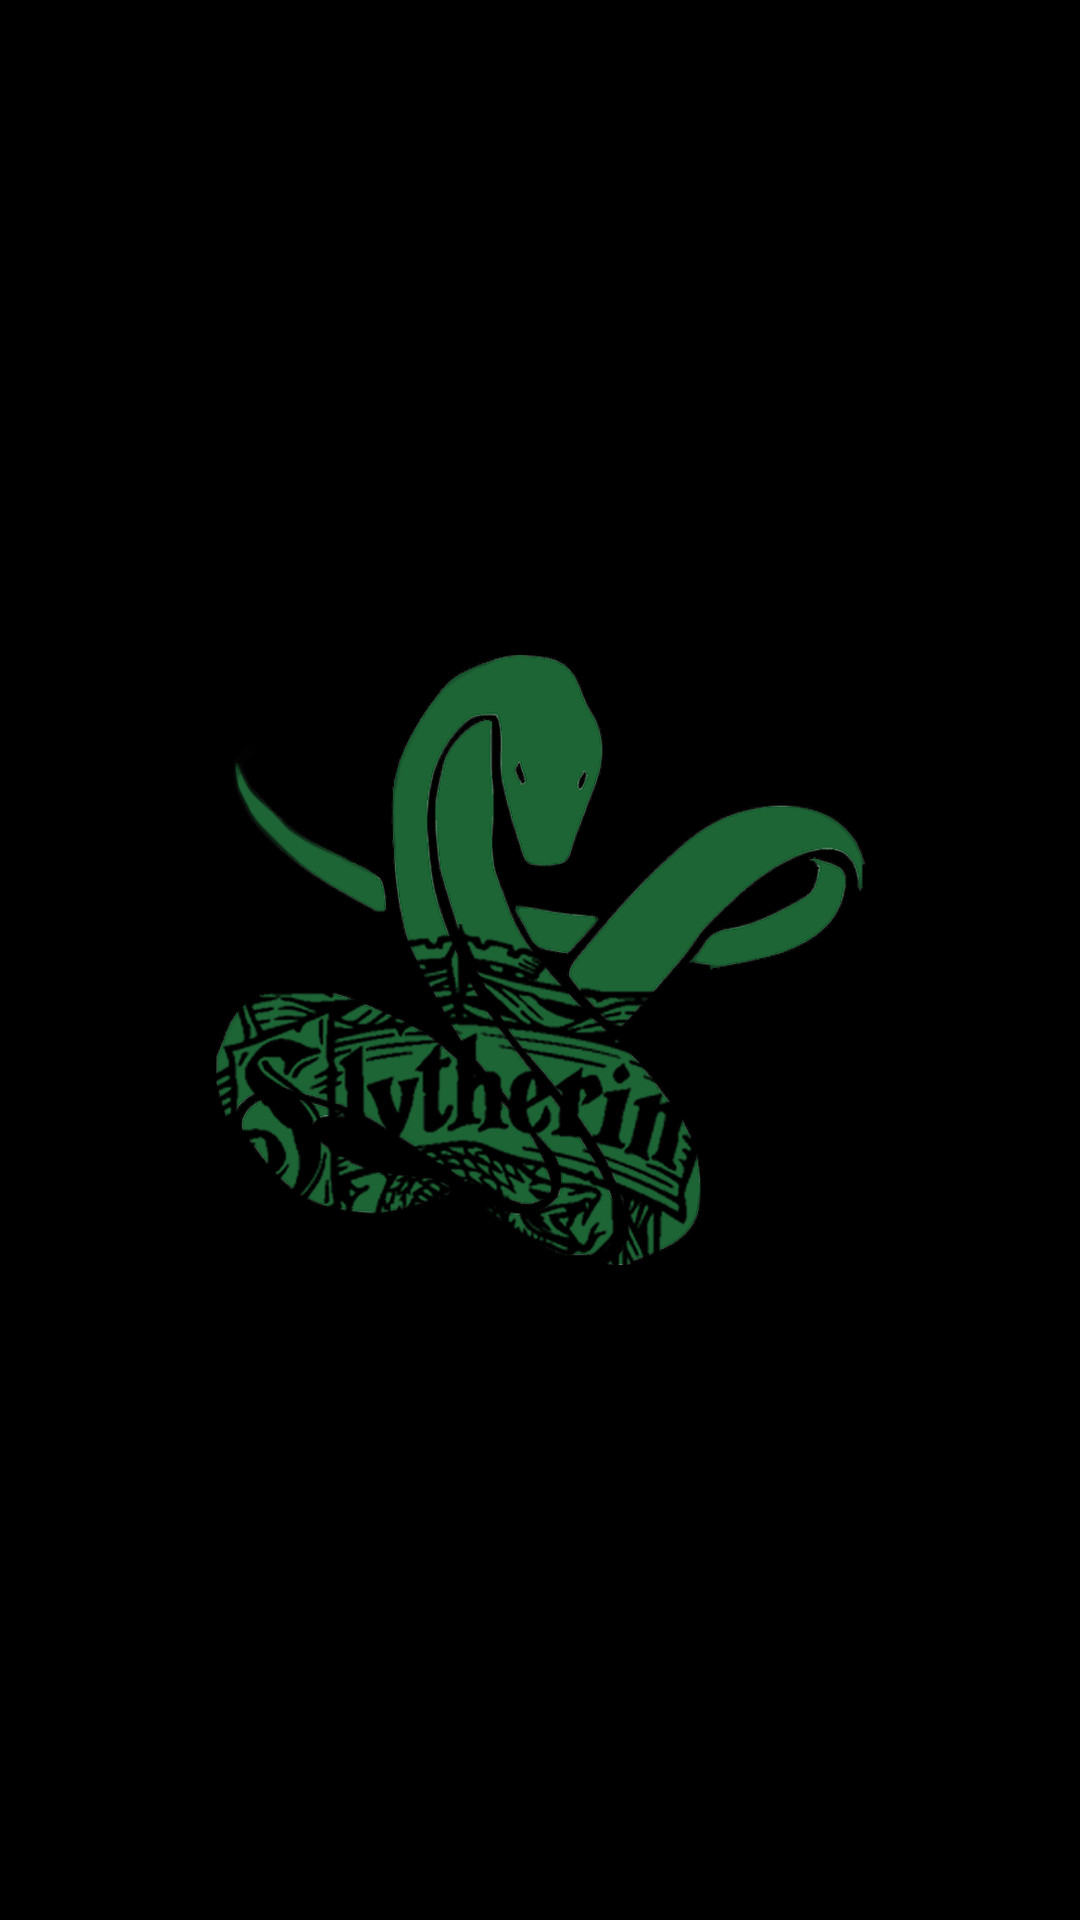 Res: 1080x1920, Full size Slytherin Iphone 7 Wallpaper 2017 is high definition wallpaper.  You can make this